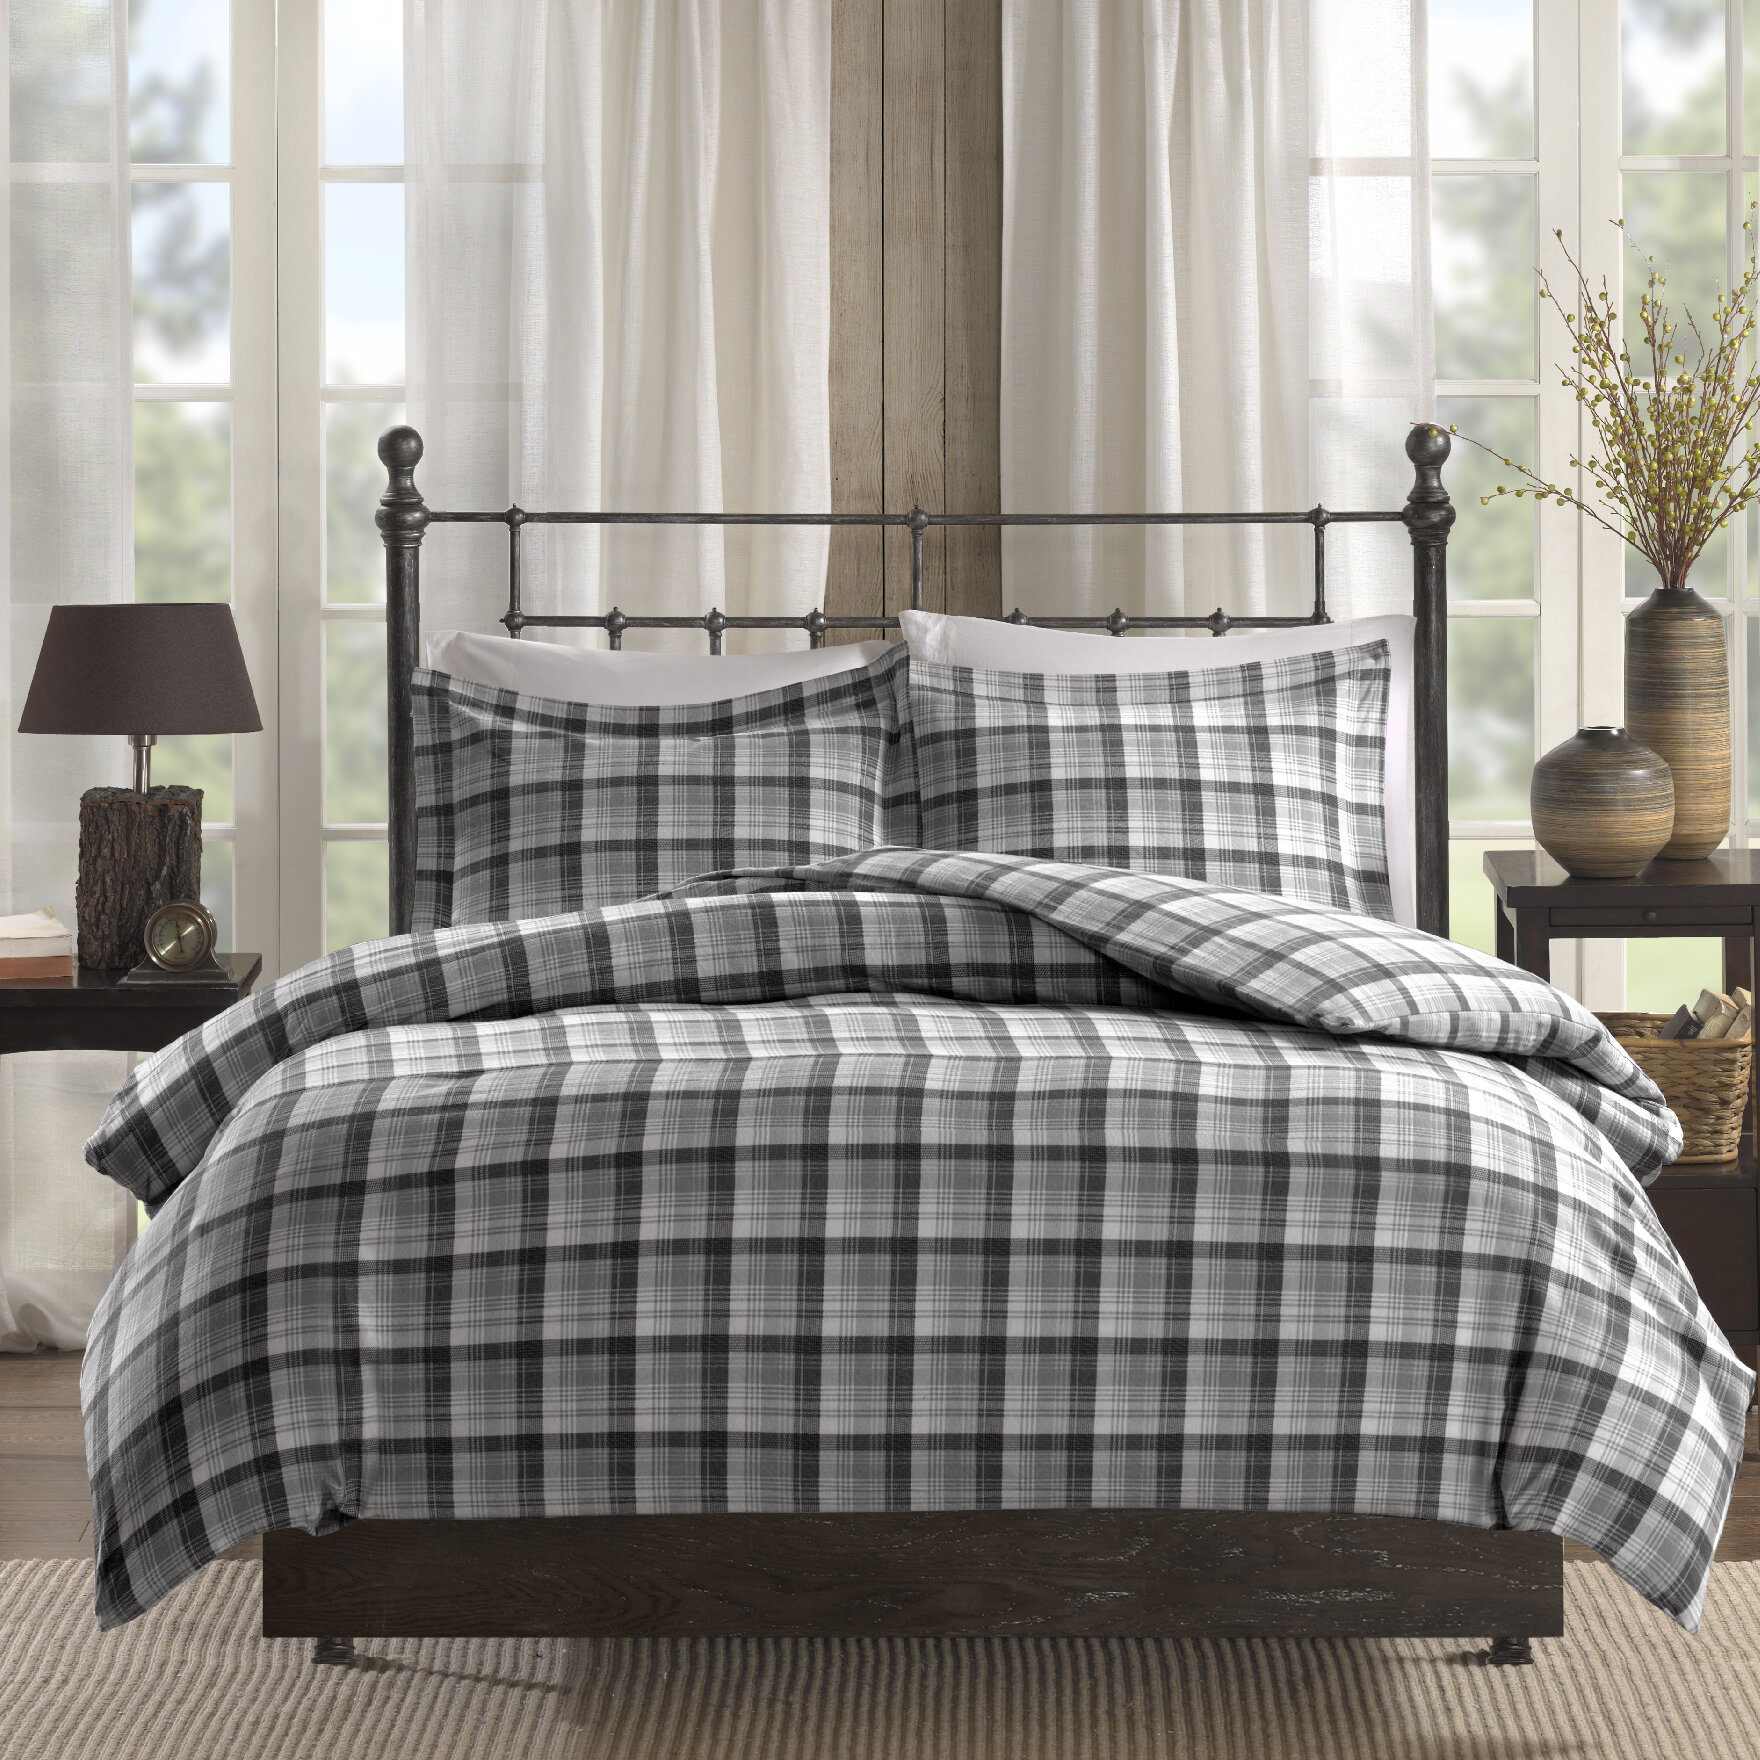 buy tesco in king drapes bedding direct chocolate bedroom sets our harvard n covers from cover duvet set range print pinterest and dreams different curtina size stripe brown at pin